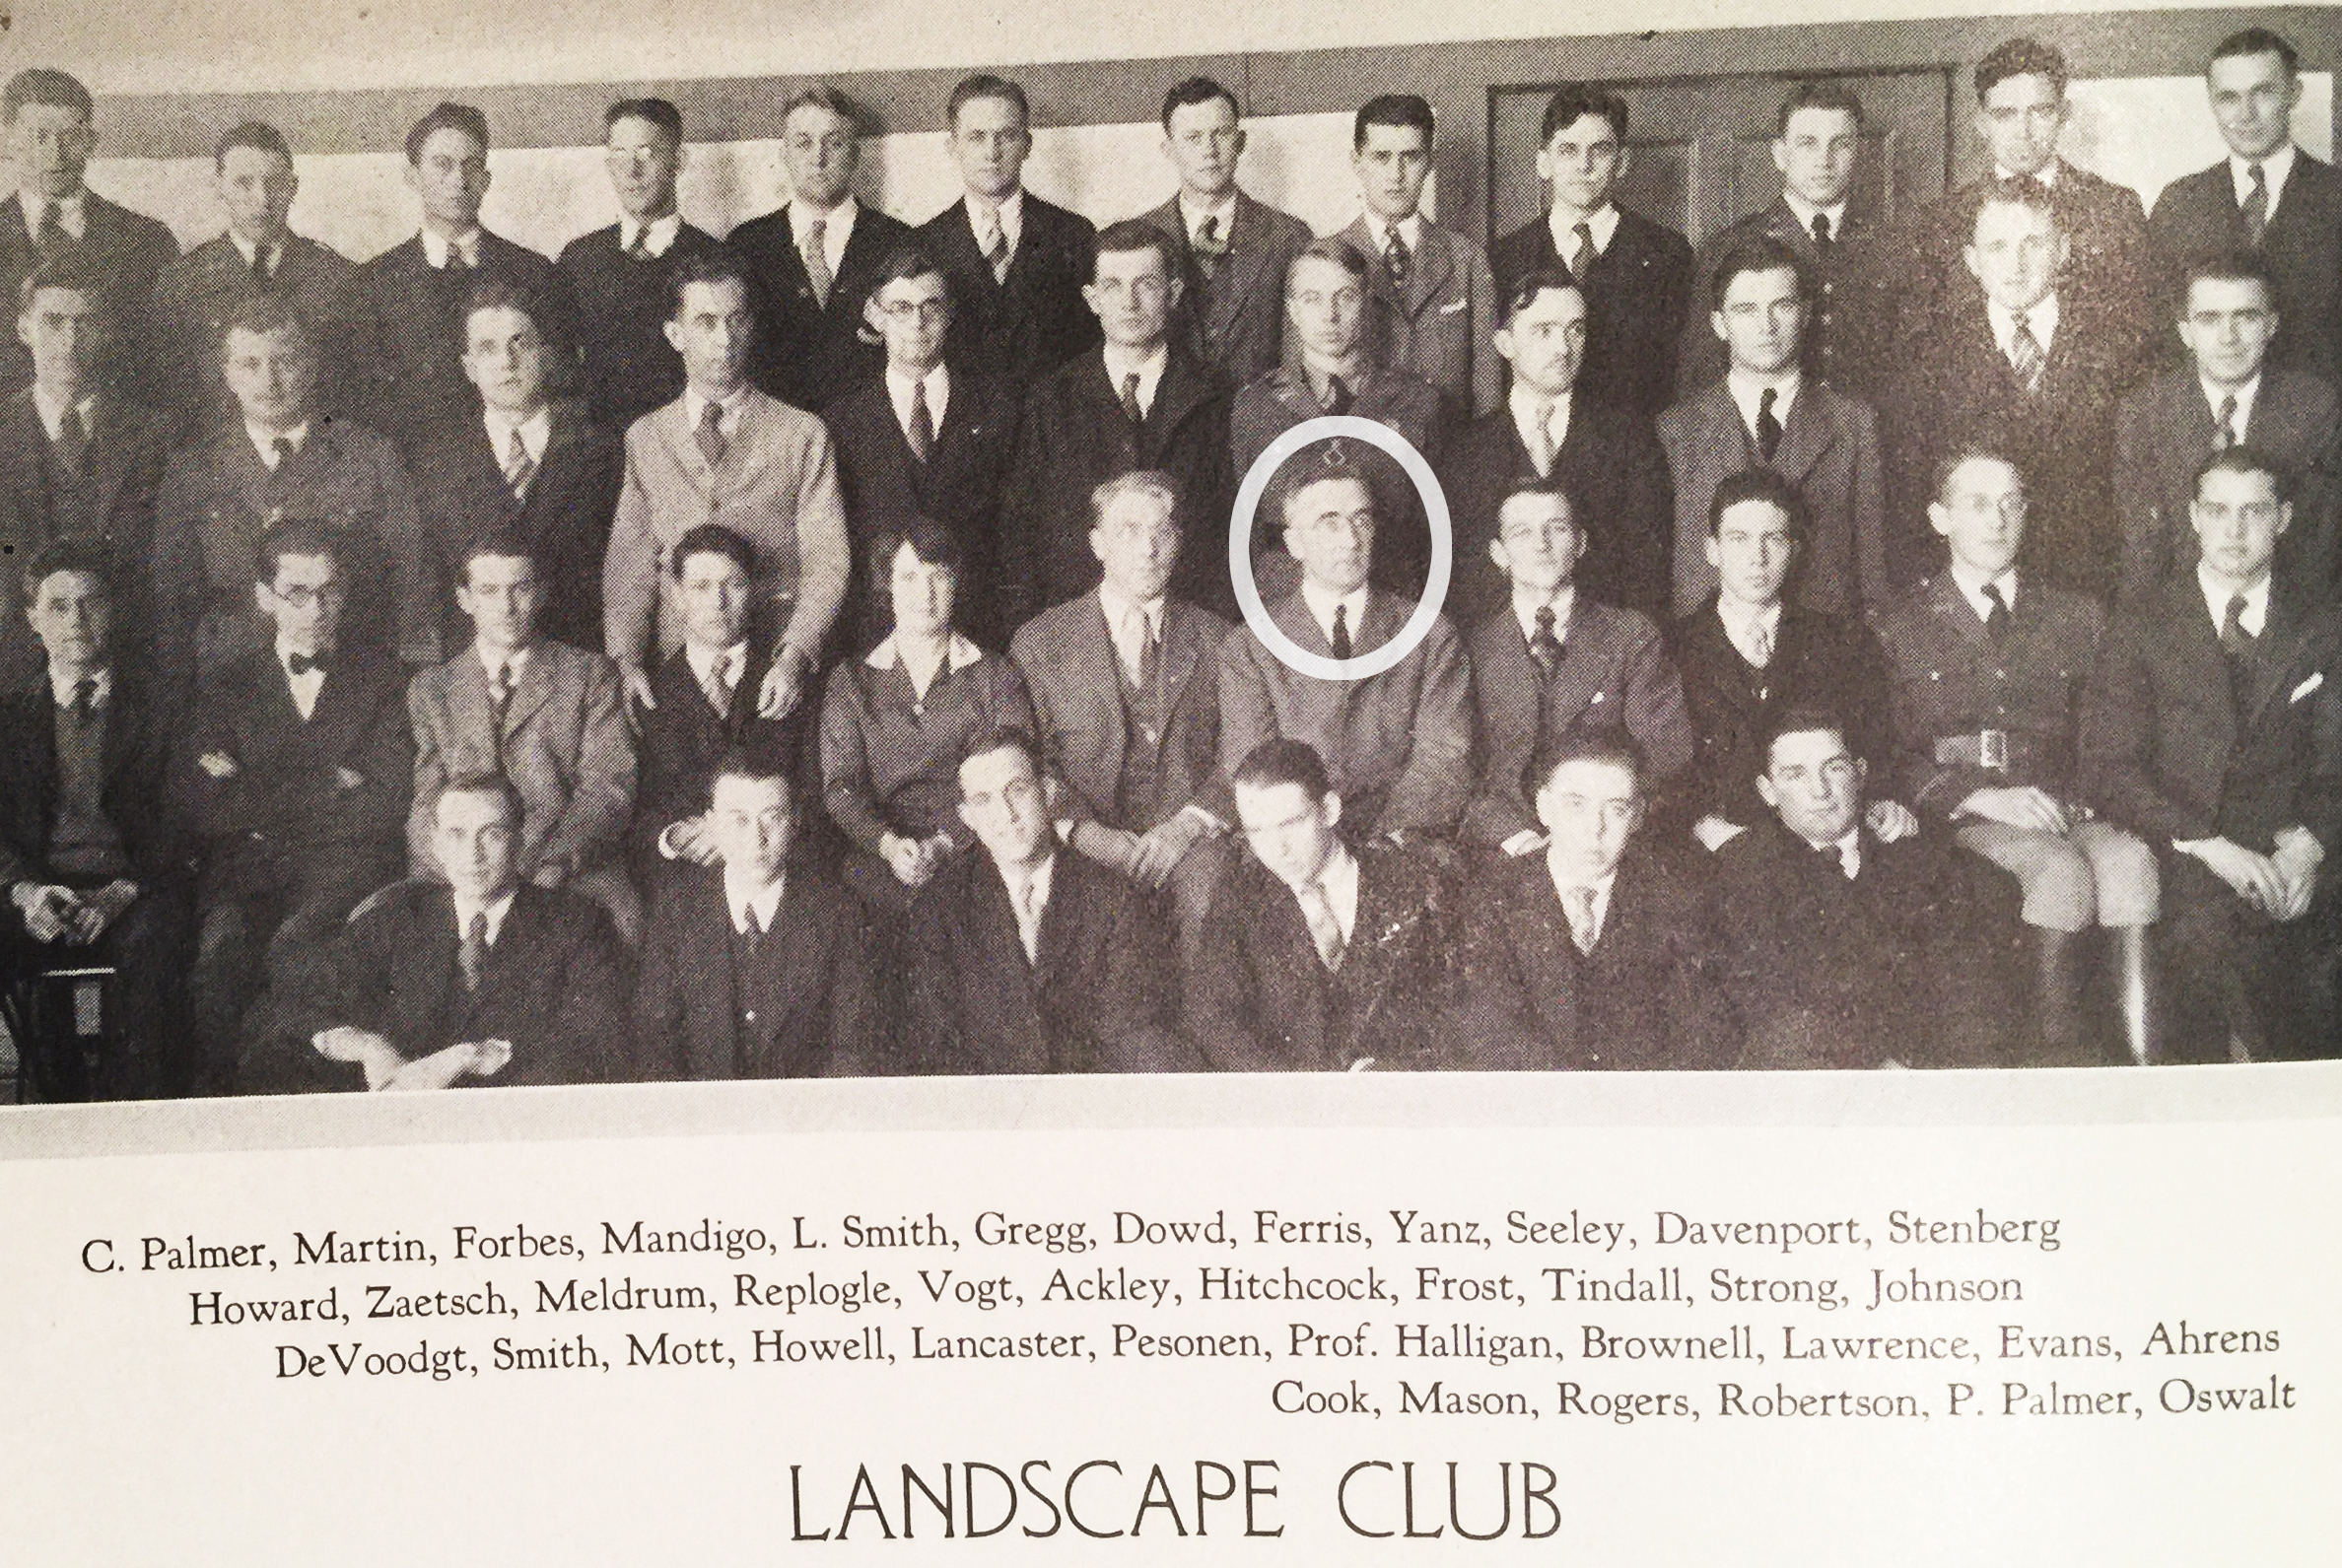 A photograph of the Landscape Architecture Club including Professor Charles Halligan circled in white.